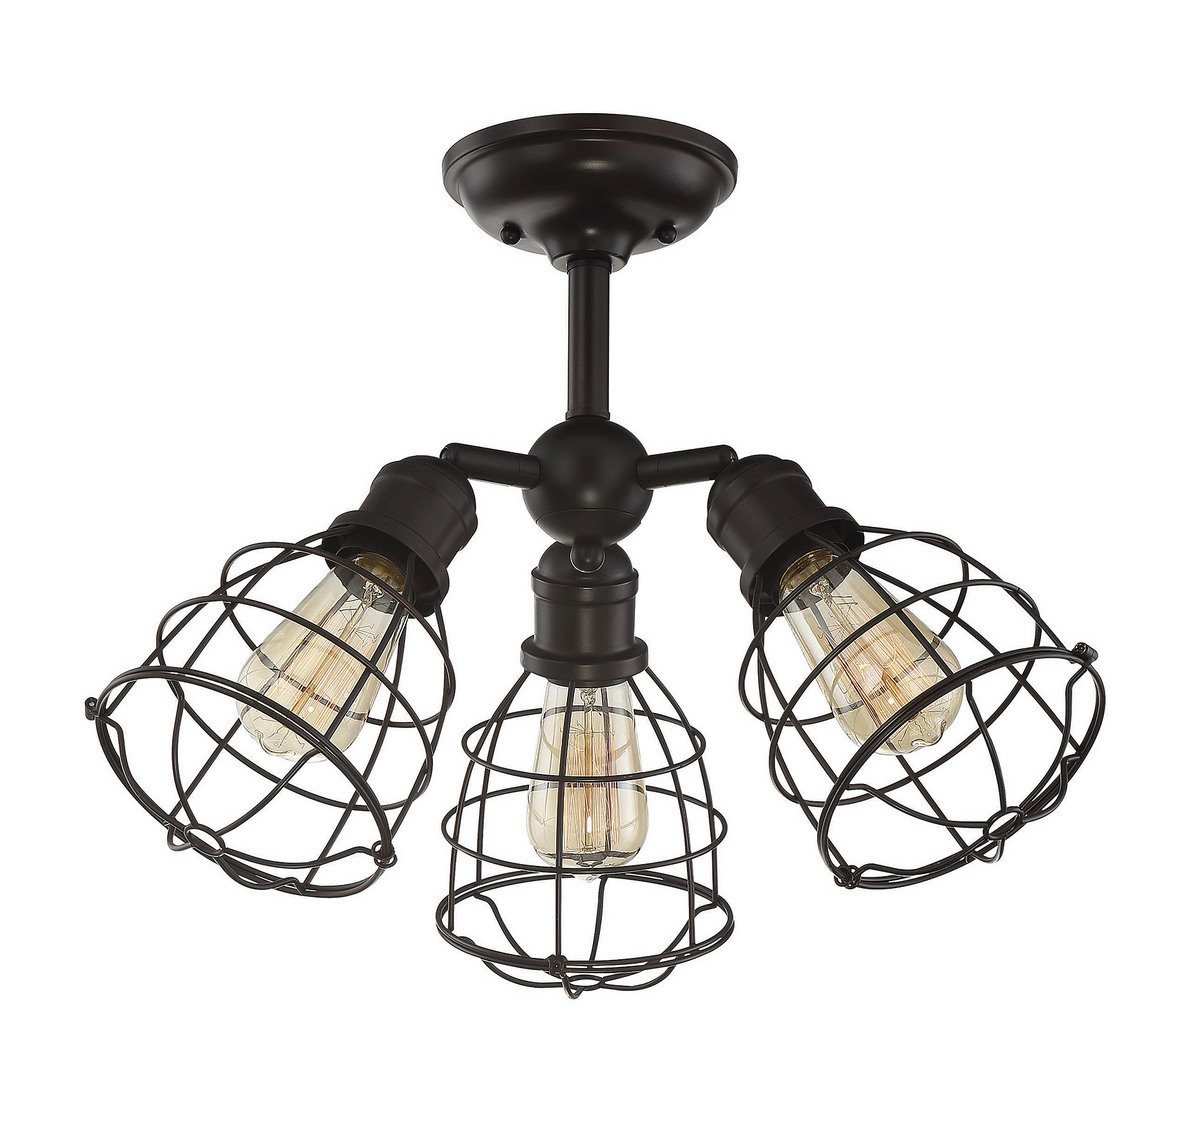 Savoy House 6-4136-3-13, Scout 3-Light Adjustable Semi-Flush in English Bronze